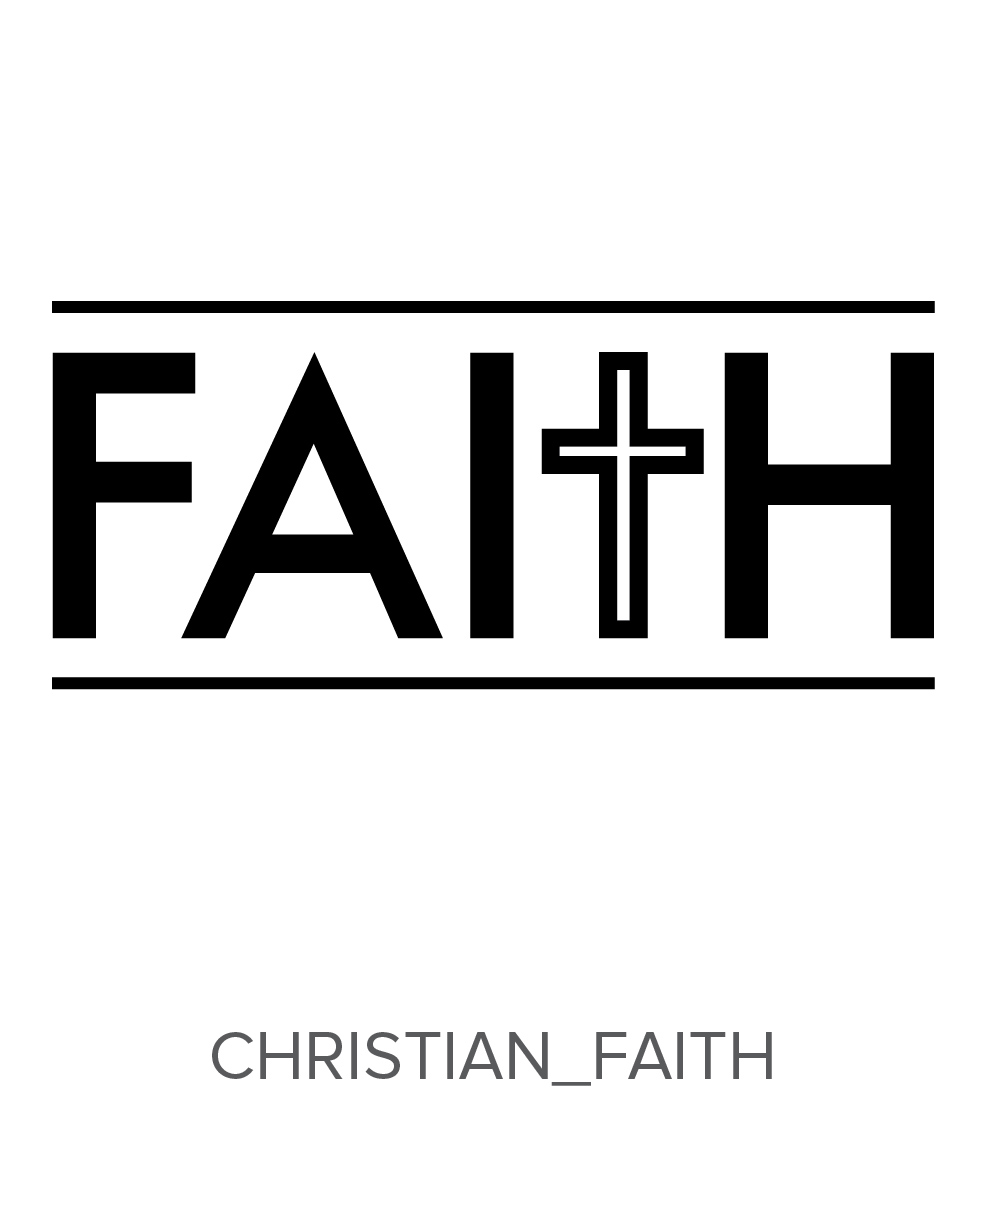 Mix and Match_faith-56.jpg